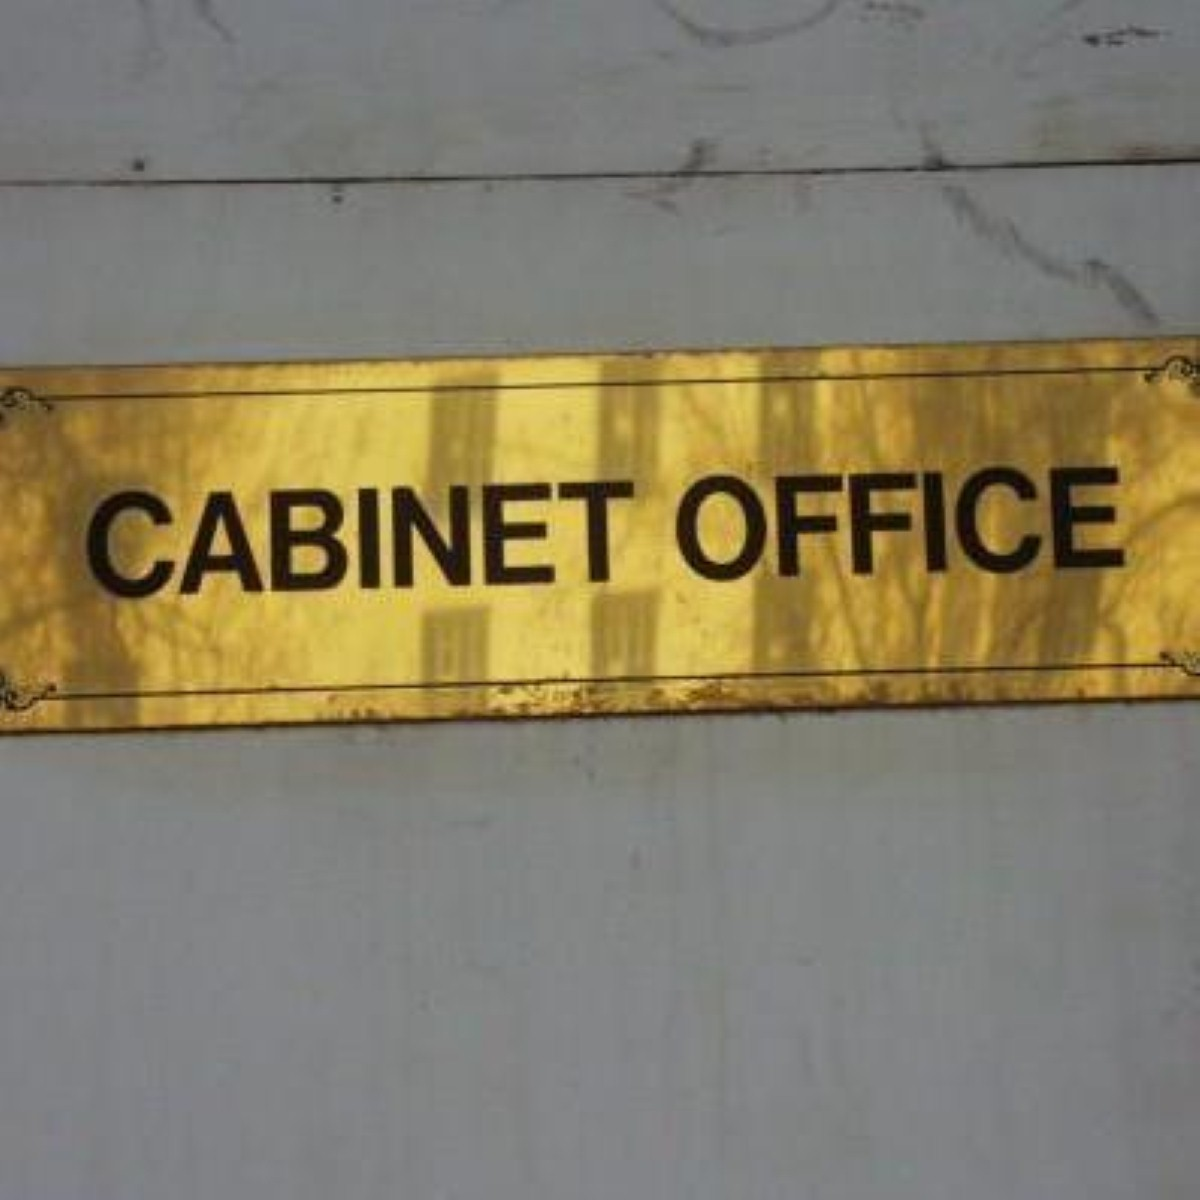 It is the first time the information tribunal has ruled on a Cabinet meeting